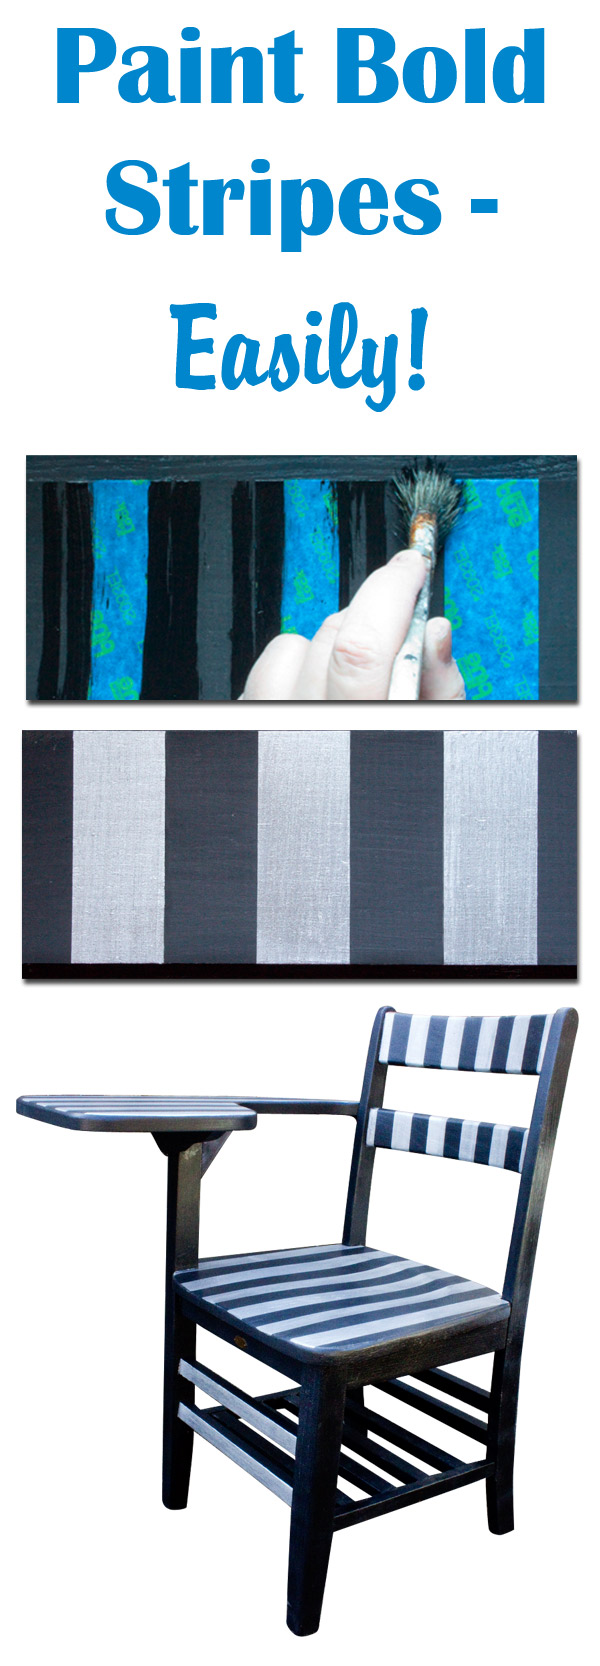 Paint-Bold-Stripes-on-Furniture!-Thicketworks-for-Heirloom-Tradtitions-at-The-Graphics-Fairy-Feature